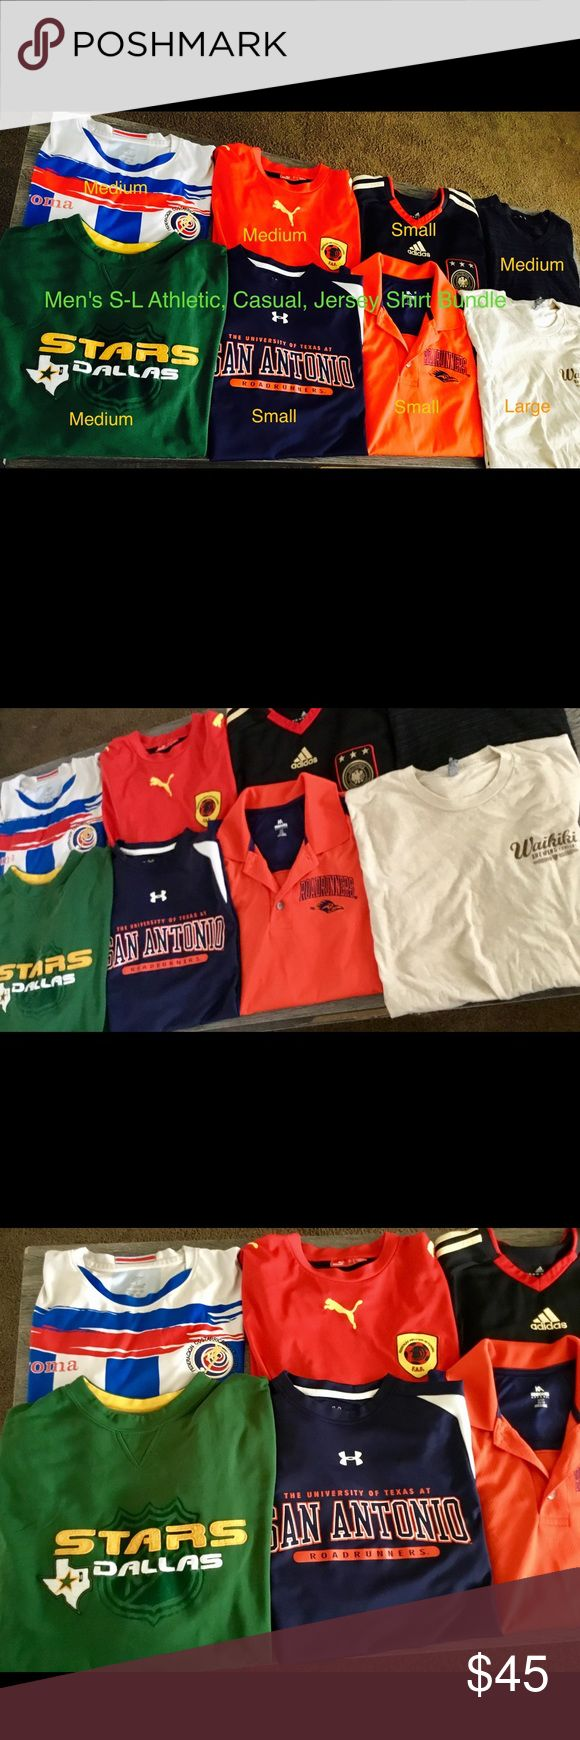 Men's Or Women Athletic/ Casual Shirt Bundle Deal Dallas Stars Long Sleeve Pullover-Good condition-Minor wear UTSA Blue Short Sleeve Athletic Tee-Under Armor-LIKE NEW (W/out tags) UTSA Orange Athletic Polo-BRAND NEW (W/out tags) never worn Waikiki Brewing Company Tee-Good condition-minor Wear  Joma Soccer Jersey-Fair condition-Some wear & minor staining  Puma Soccer Jersey- Good condition-minor Wear Adidas Soccer Jersey-Good Condition-minor wear  Black V-Neck-Good condition-Minor wear Shirts